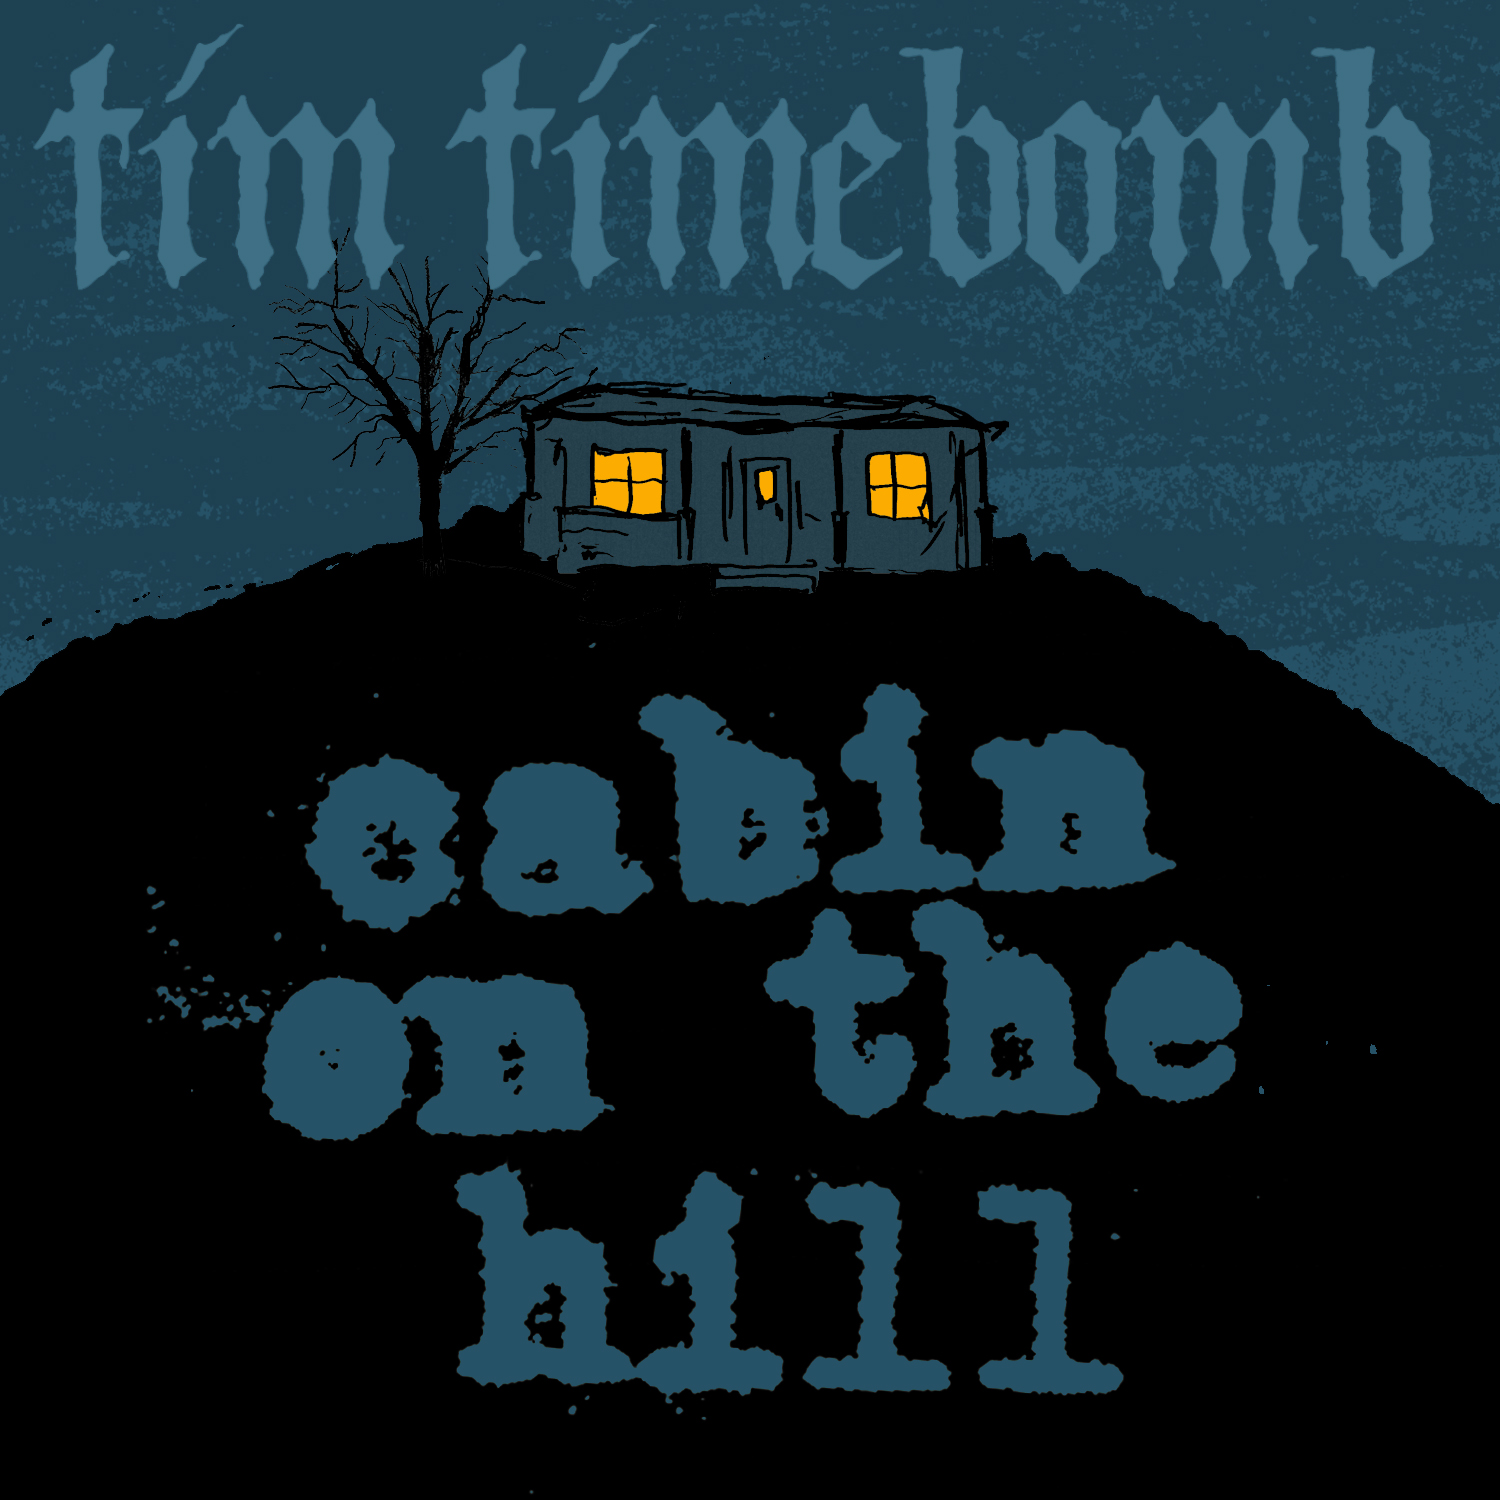 __CABIN ON THE HILL